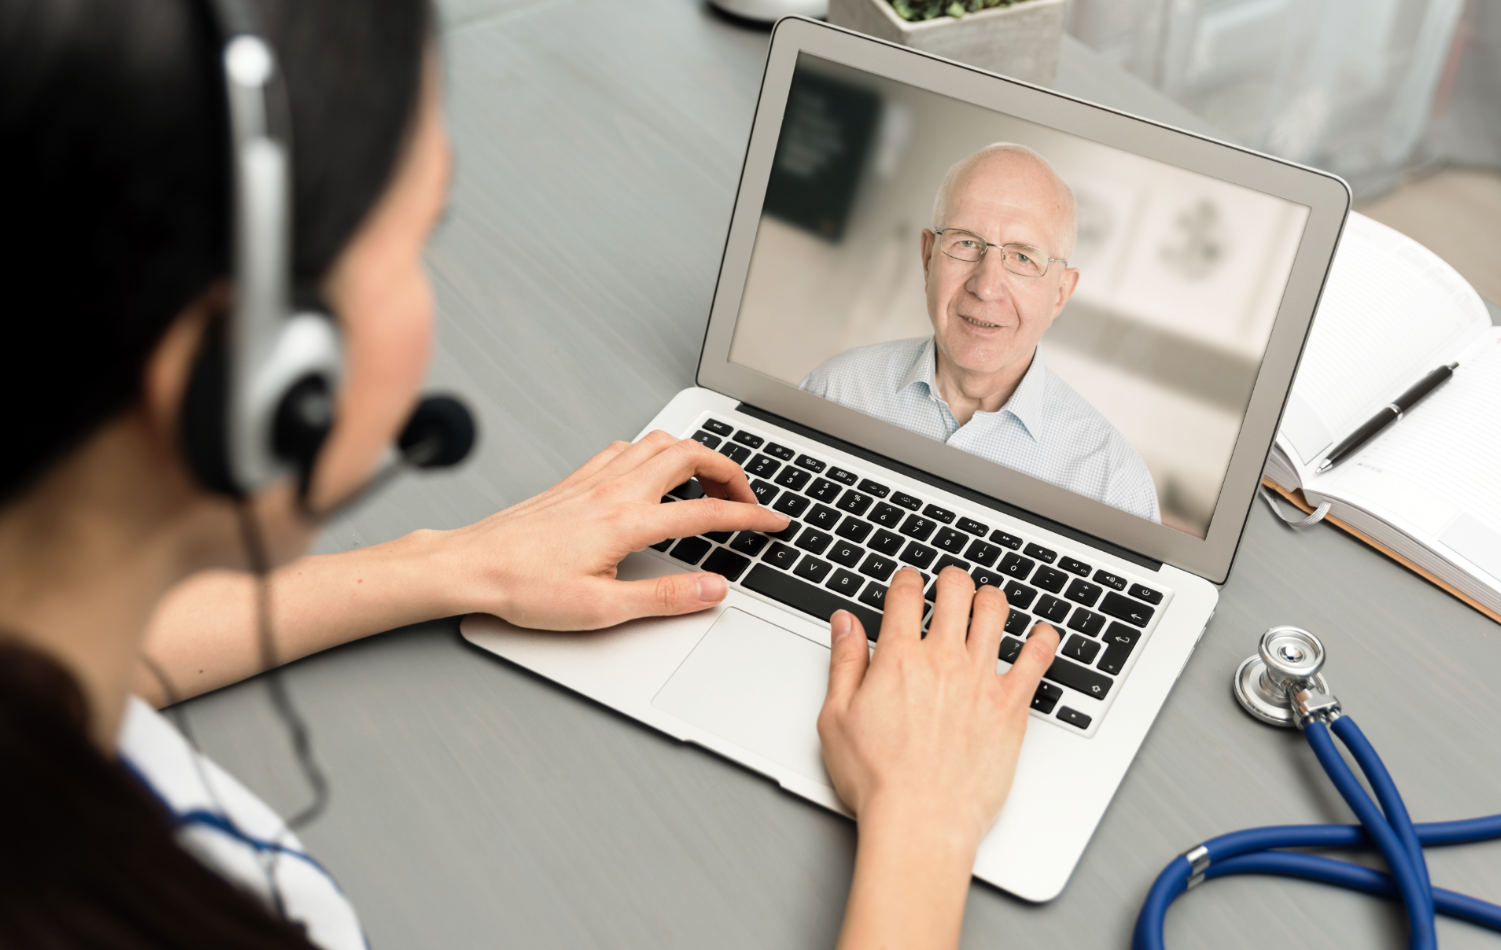 telehealth, EHR Technology and Remote Patient Monitoring Blog